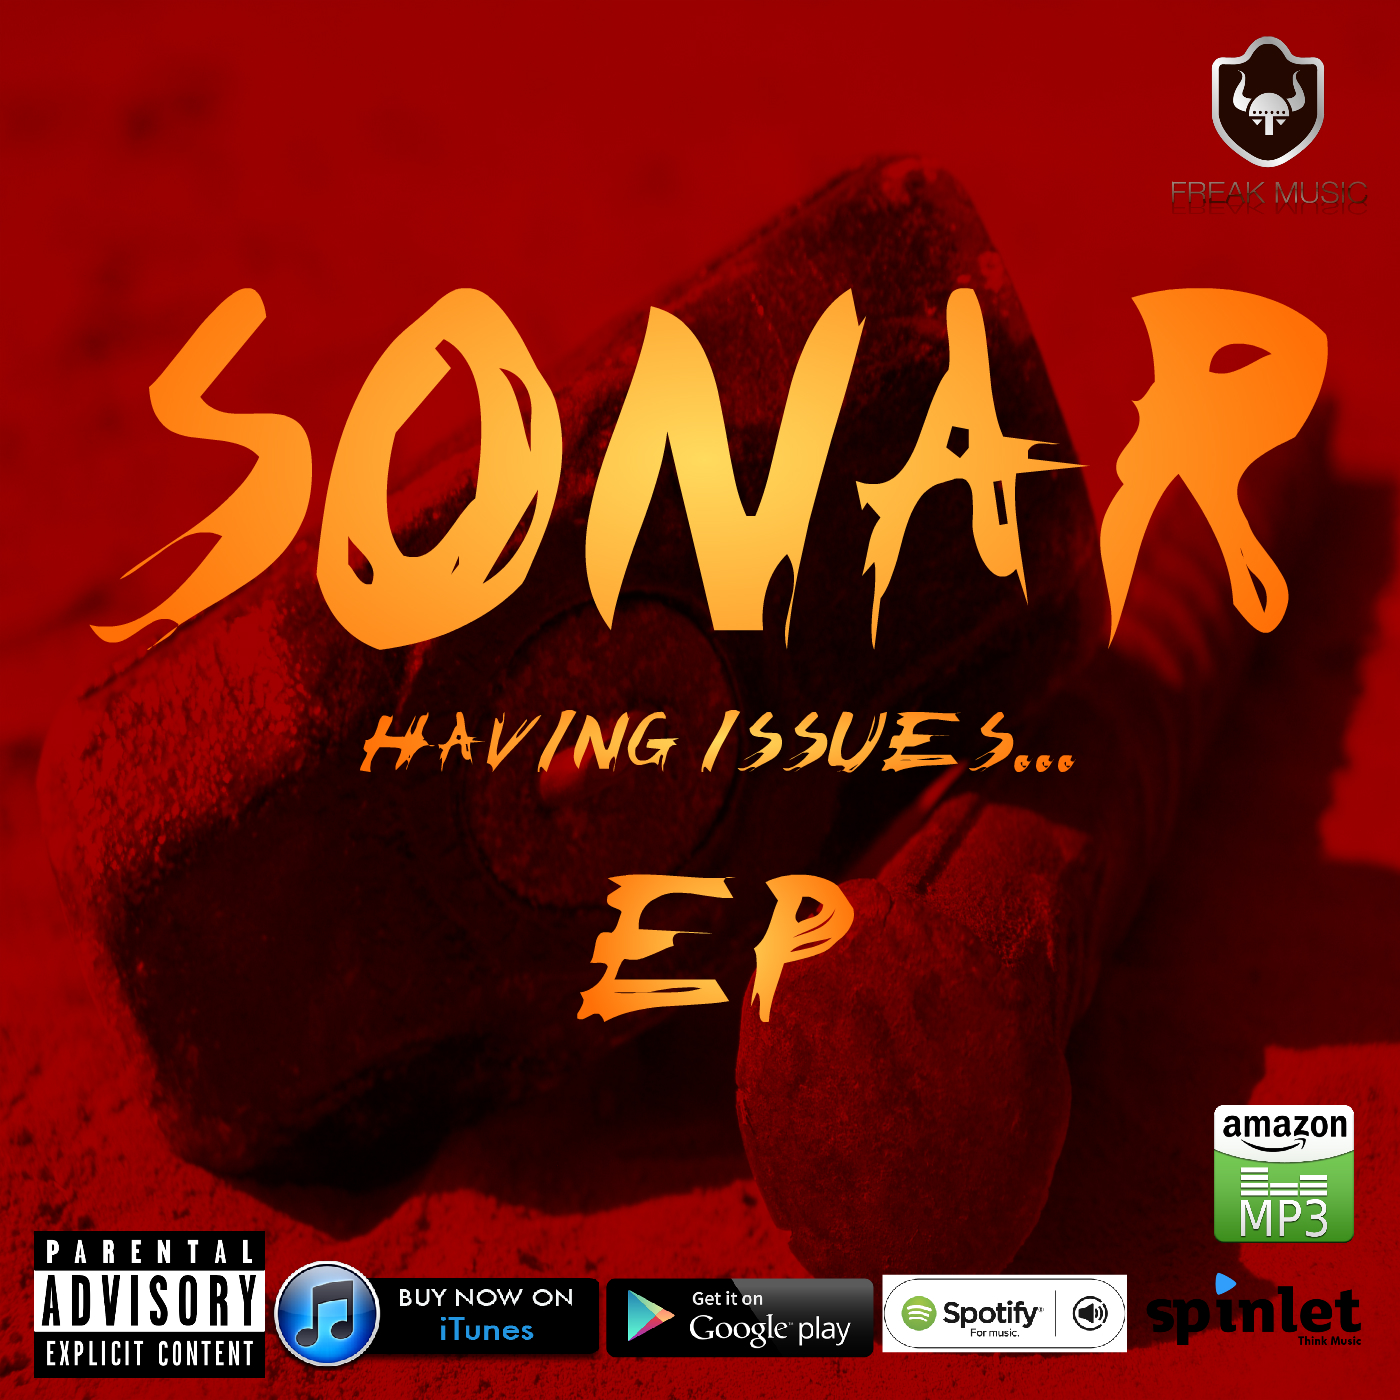 sonar's producer album - having issues ep